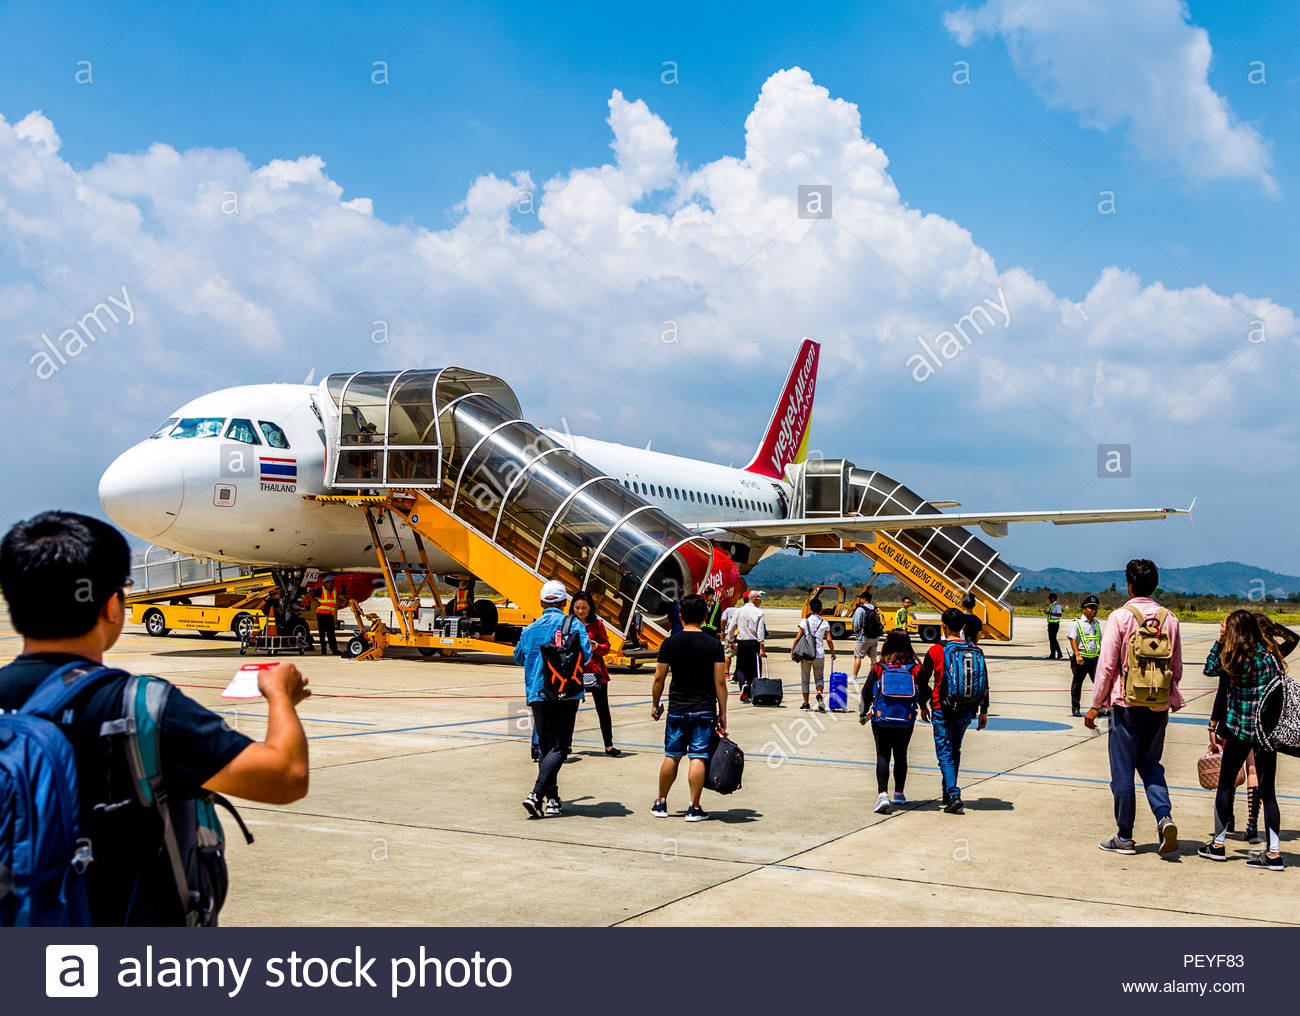 A Vietjet loading in DaLat Airport with passengers walking to the plane. Editorial, March 2, 2018, passengers walking. - Stock Image